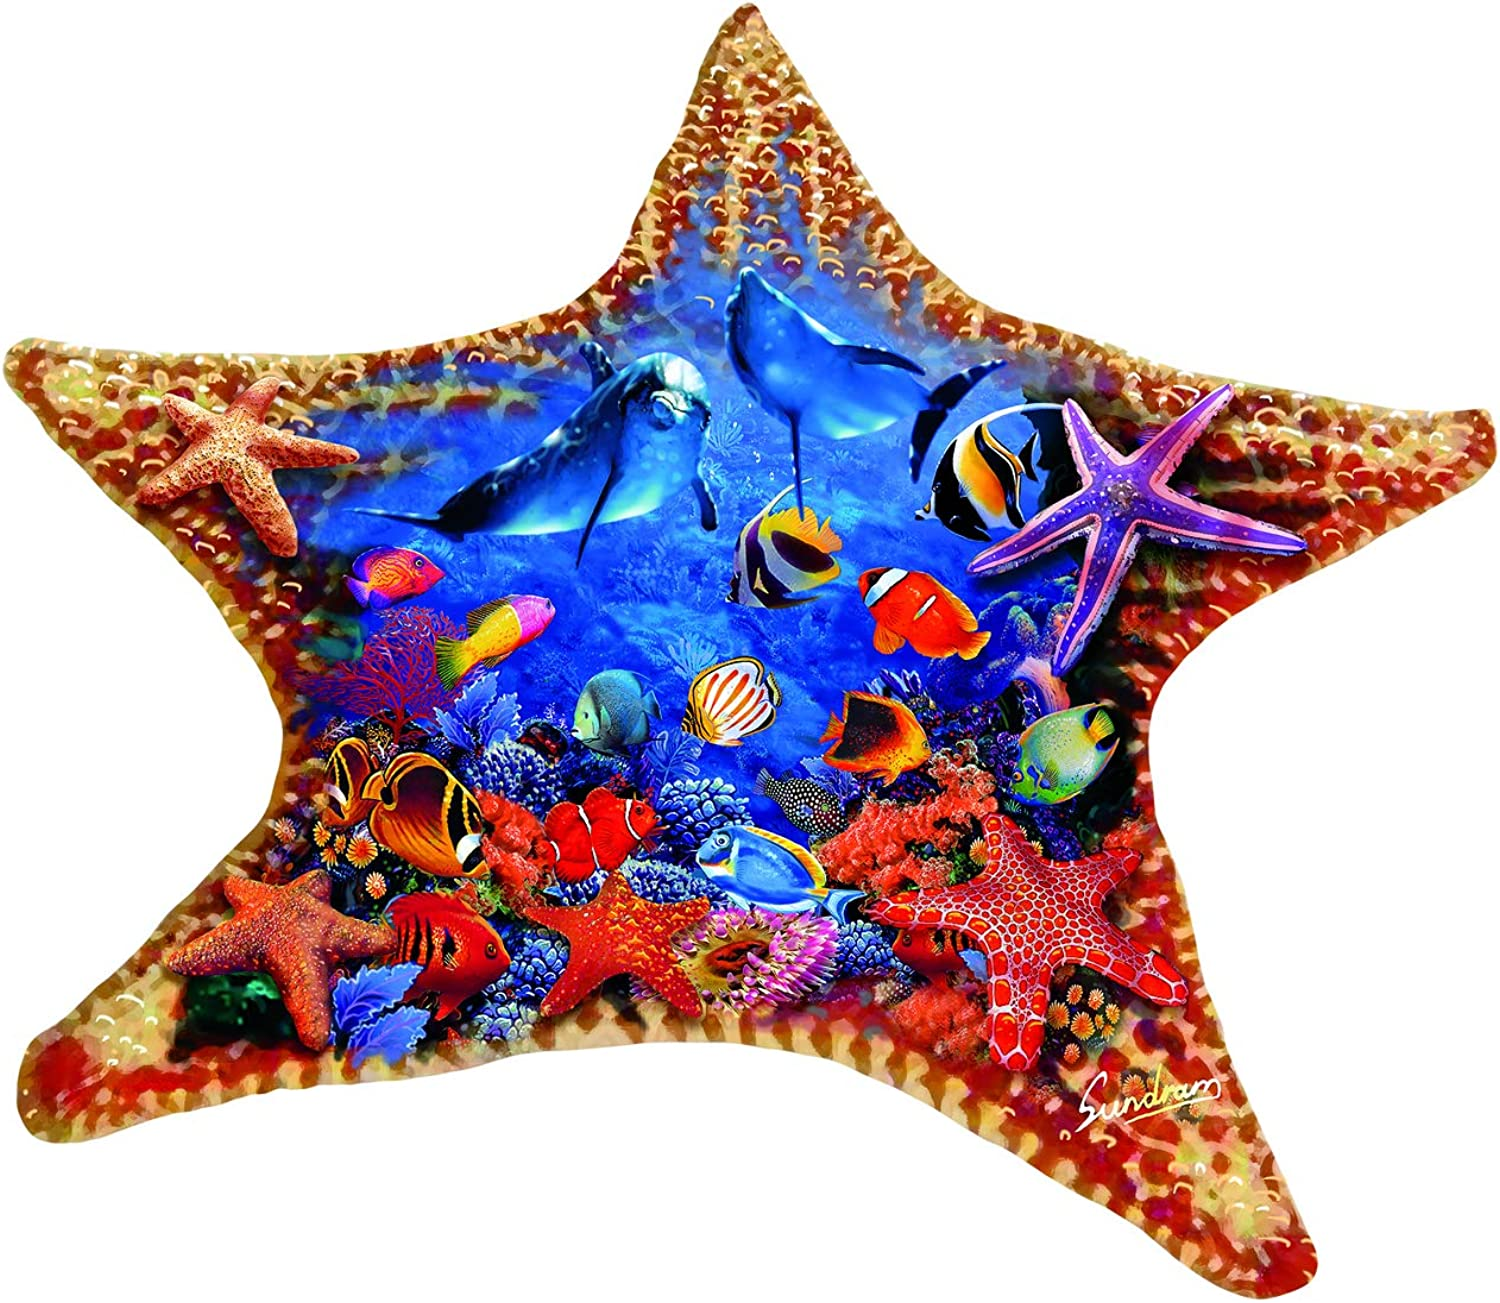 Starfish 600 Piece Shaped Jigsaw Puzzle by SunsOut